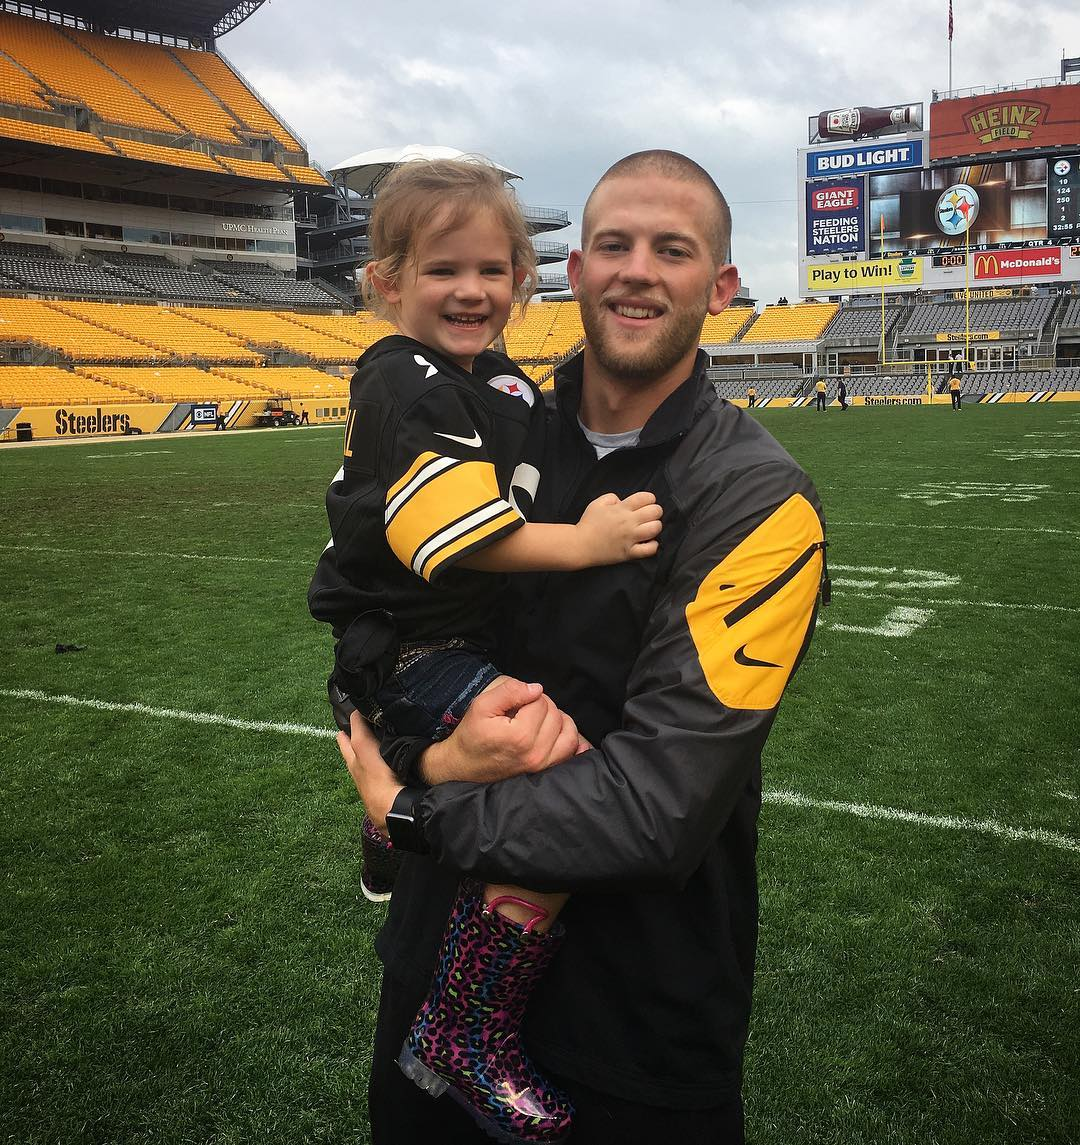 Chris Boswell Instagram username